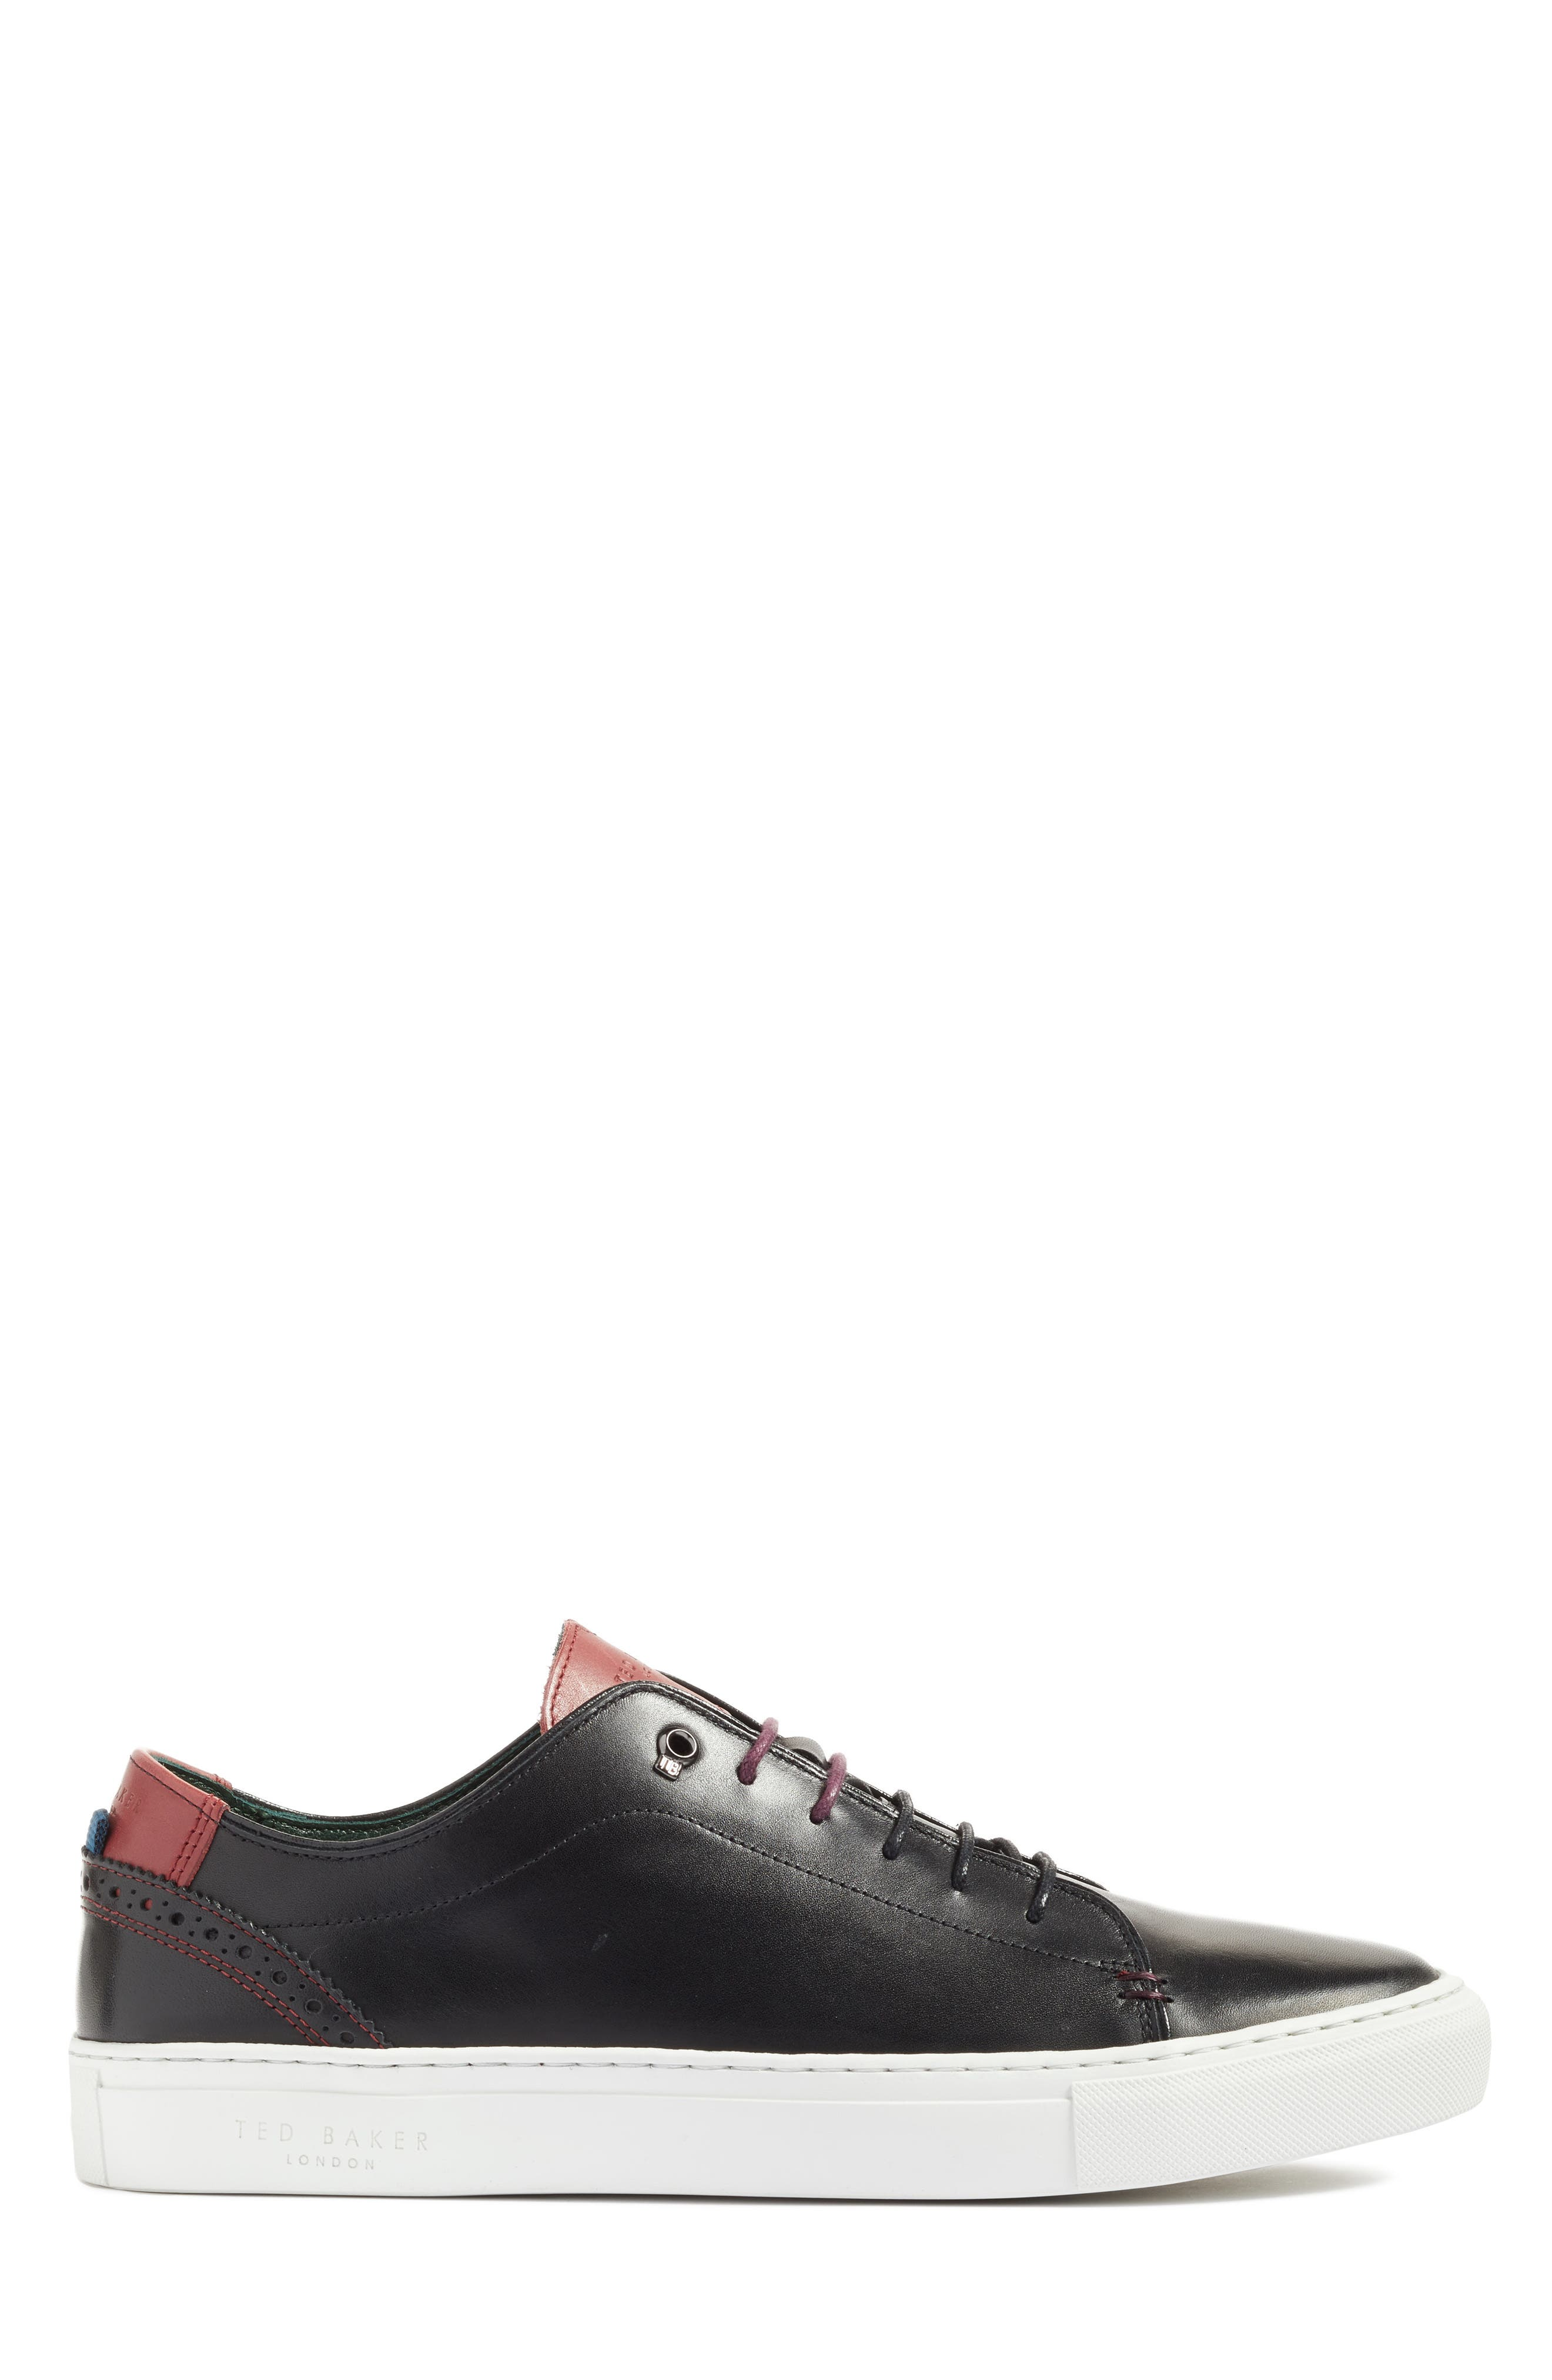 TED BAKER LONDON, 'Kiing Classic' Sneaker, Main thumbnail 1, color, 001